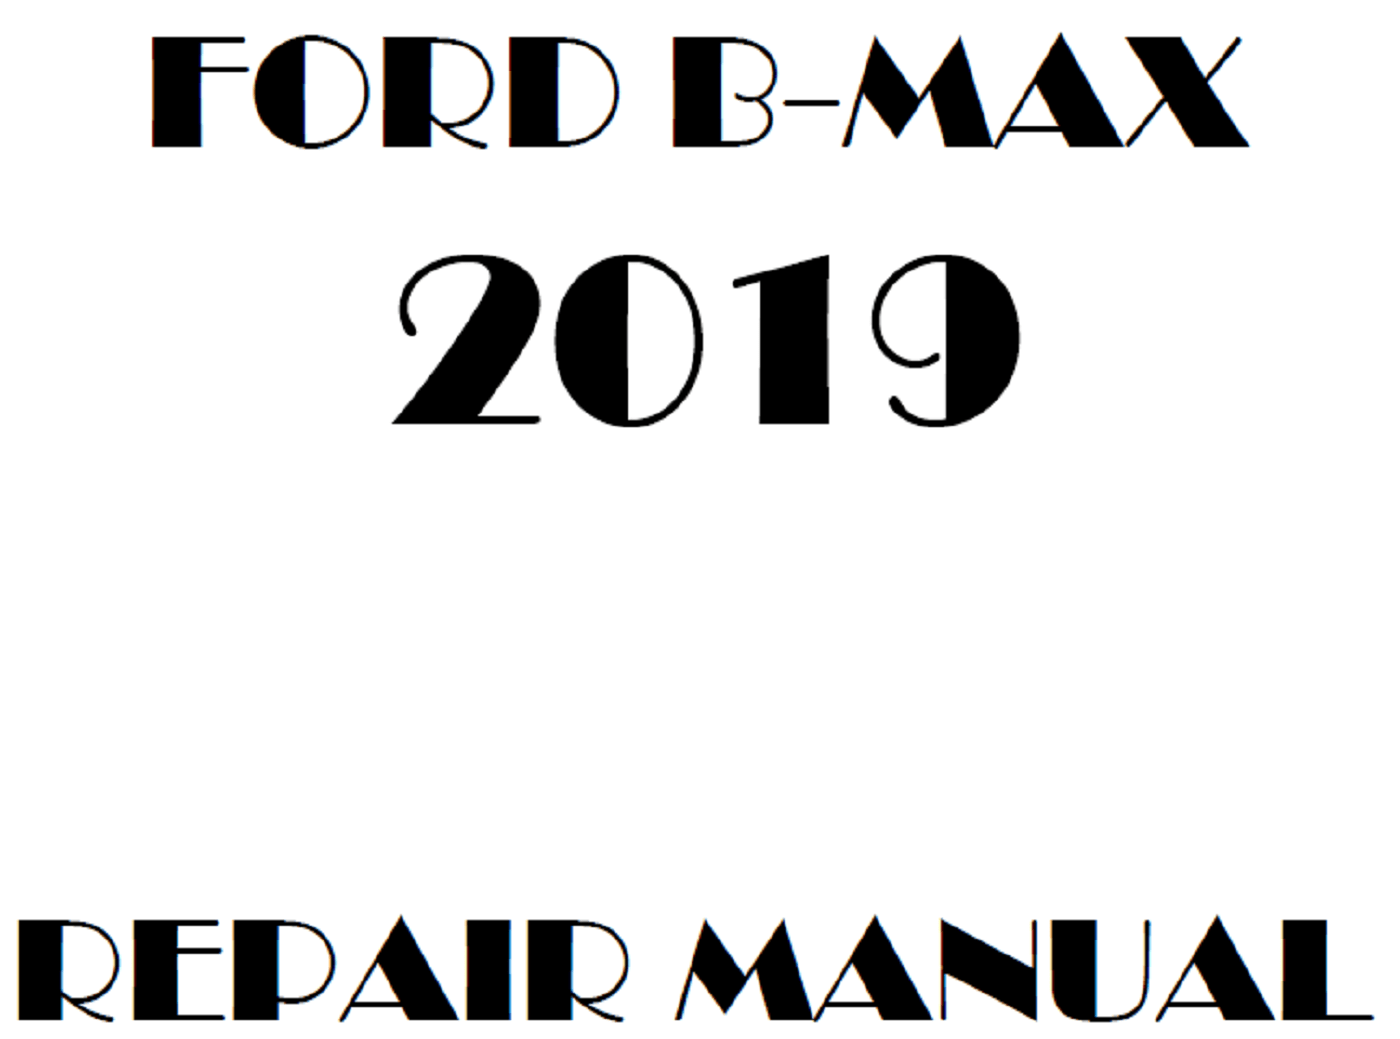 2019 Ford B-Max repair manual